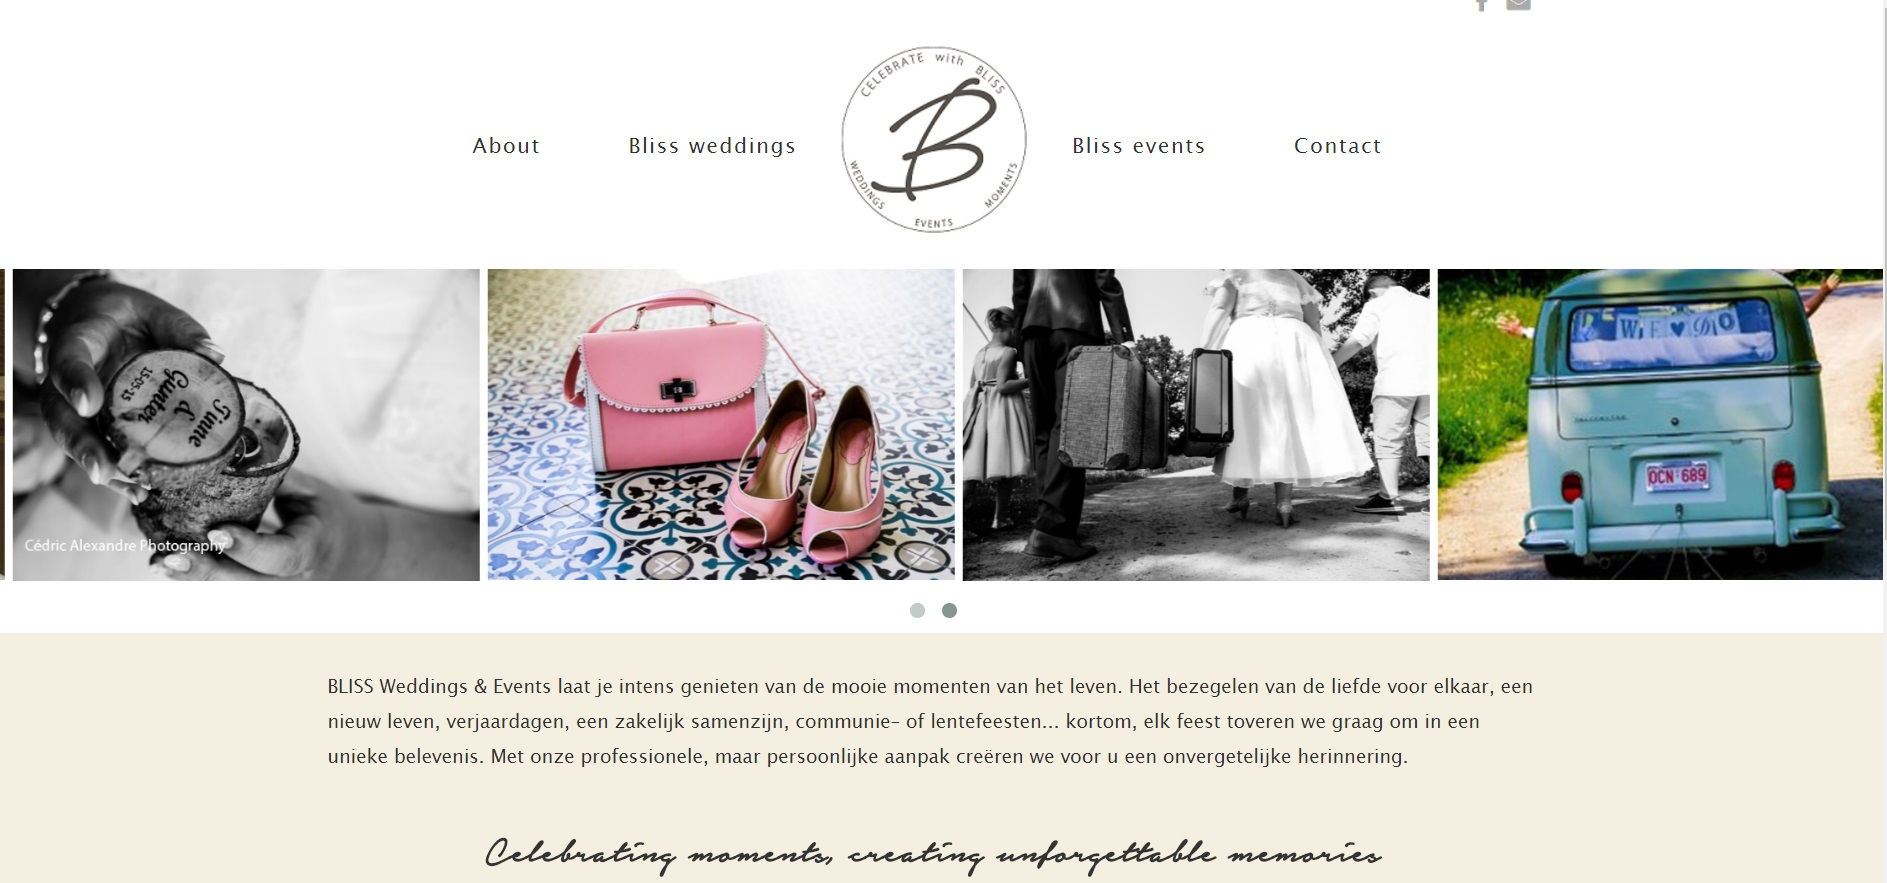 Bliss events | Webdesign weddingplanner